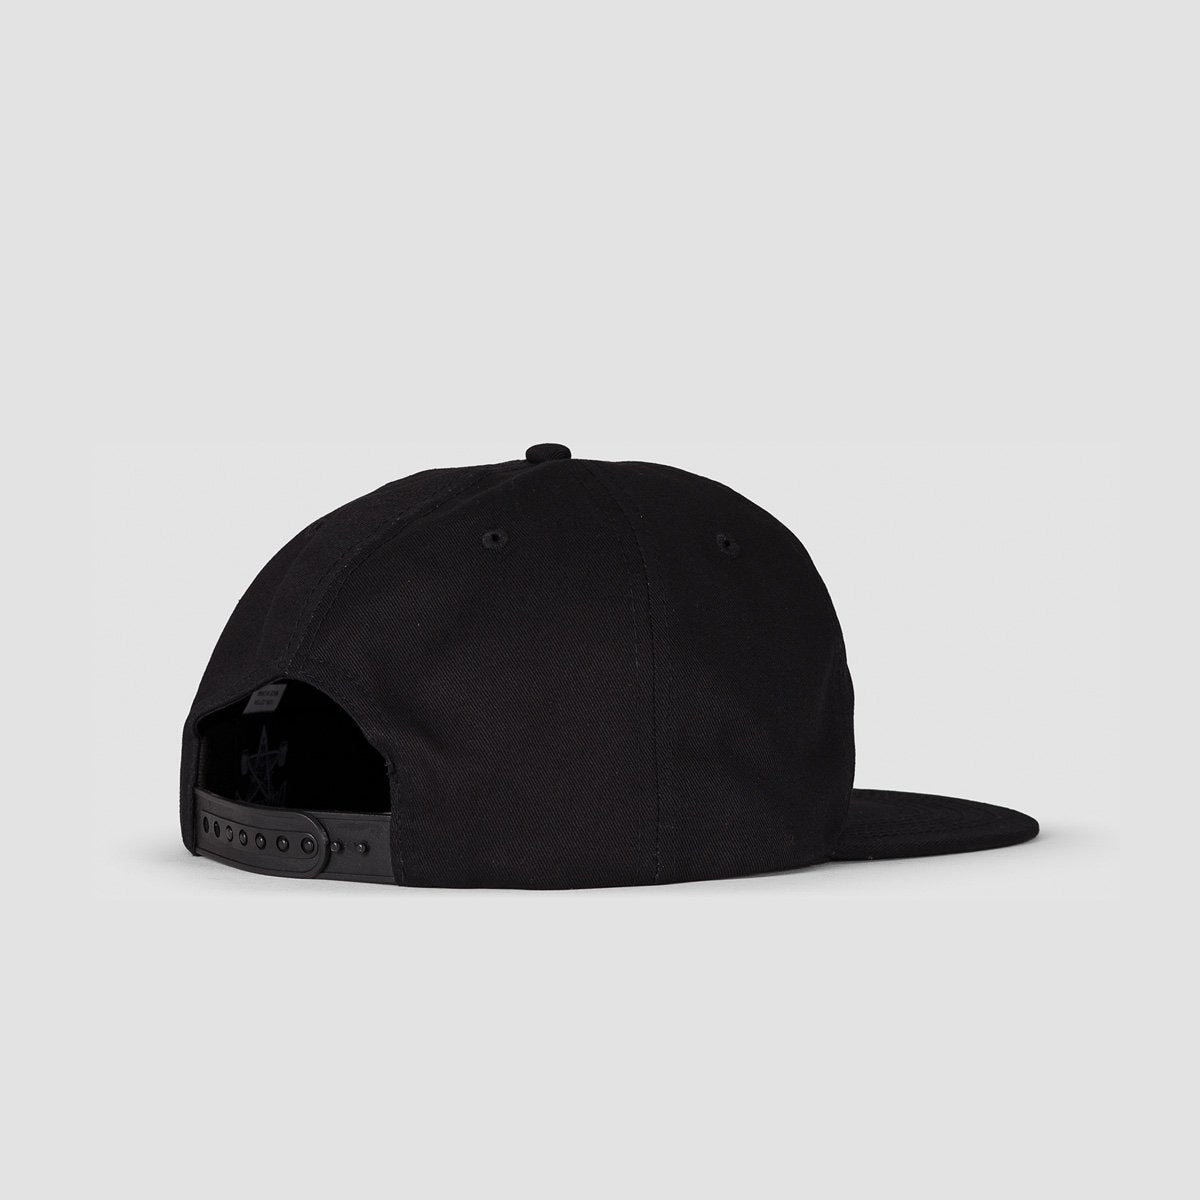 Thrasher Outlined Snapback Cap Black - Accessories